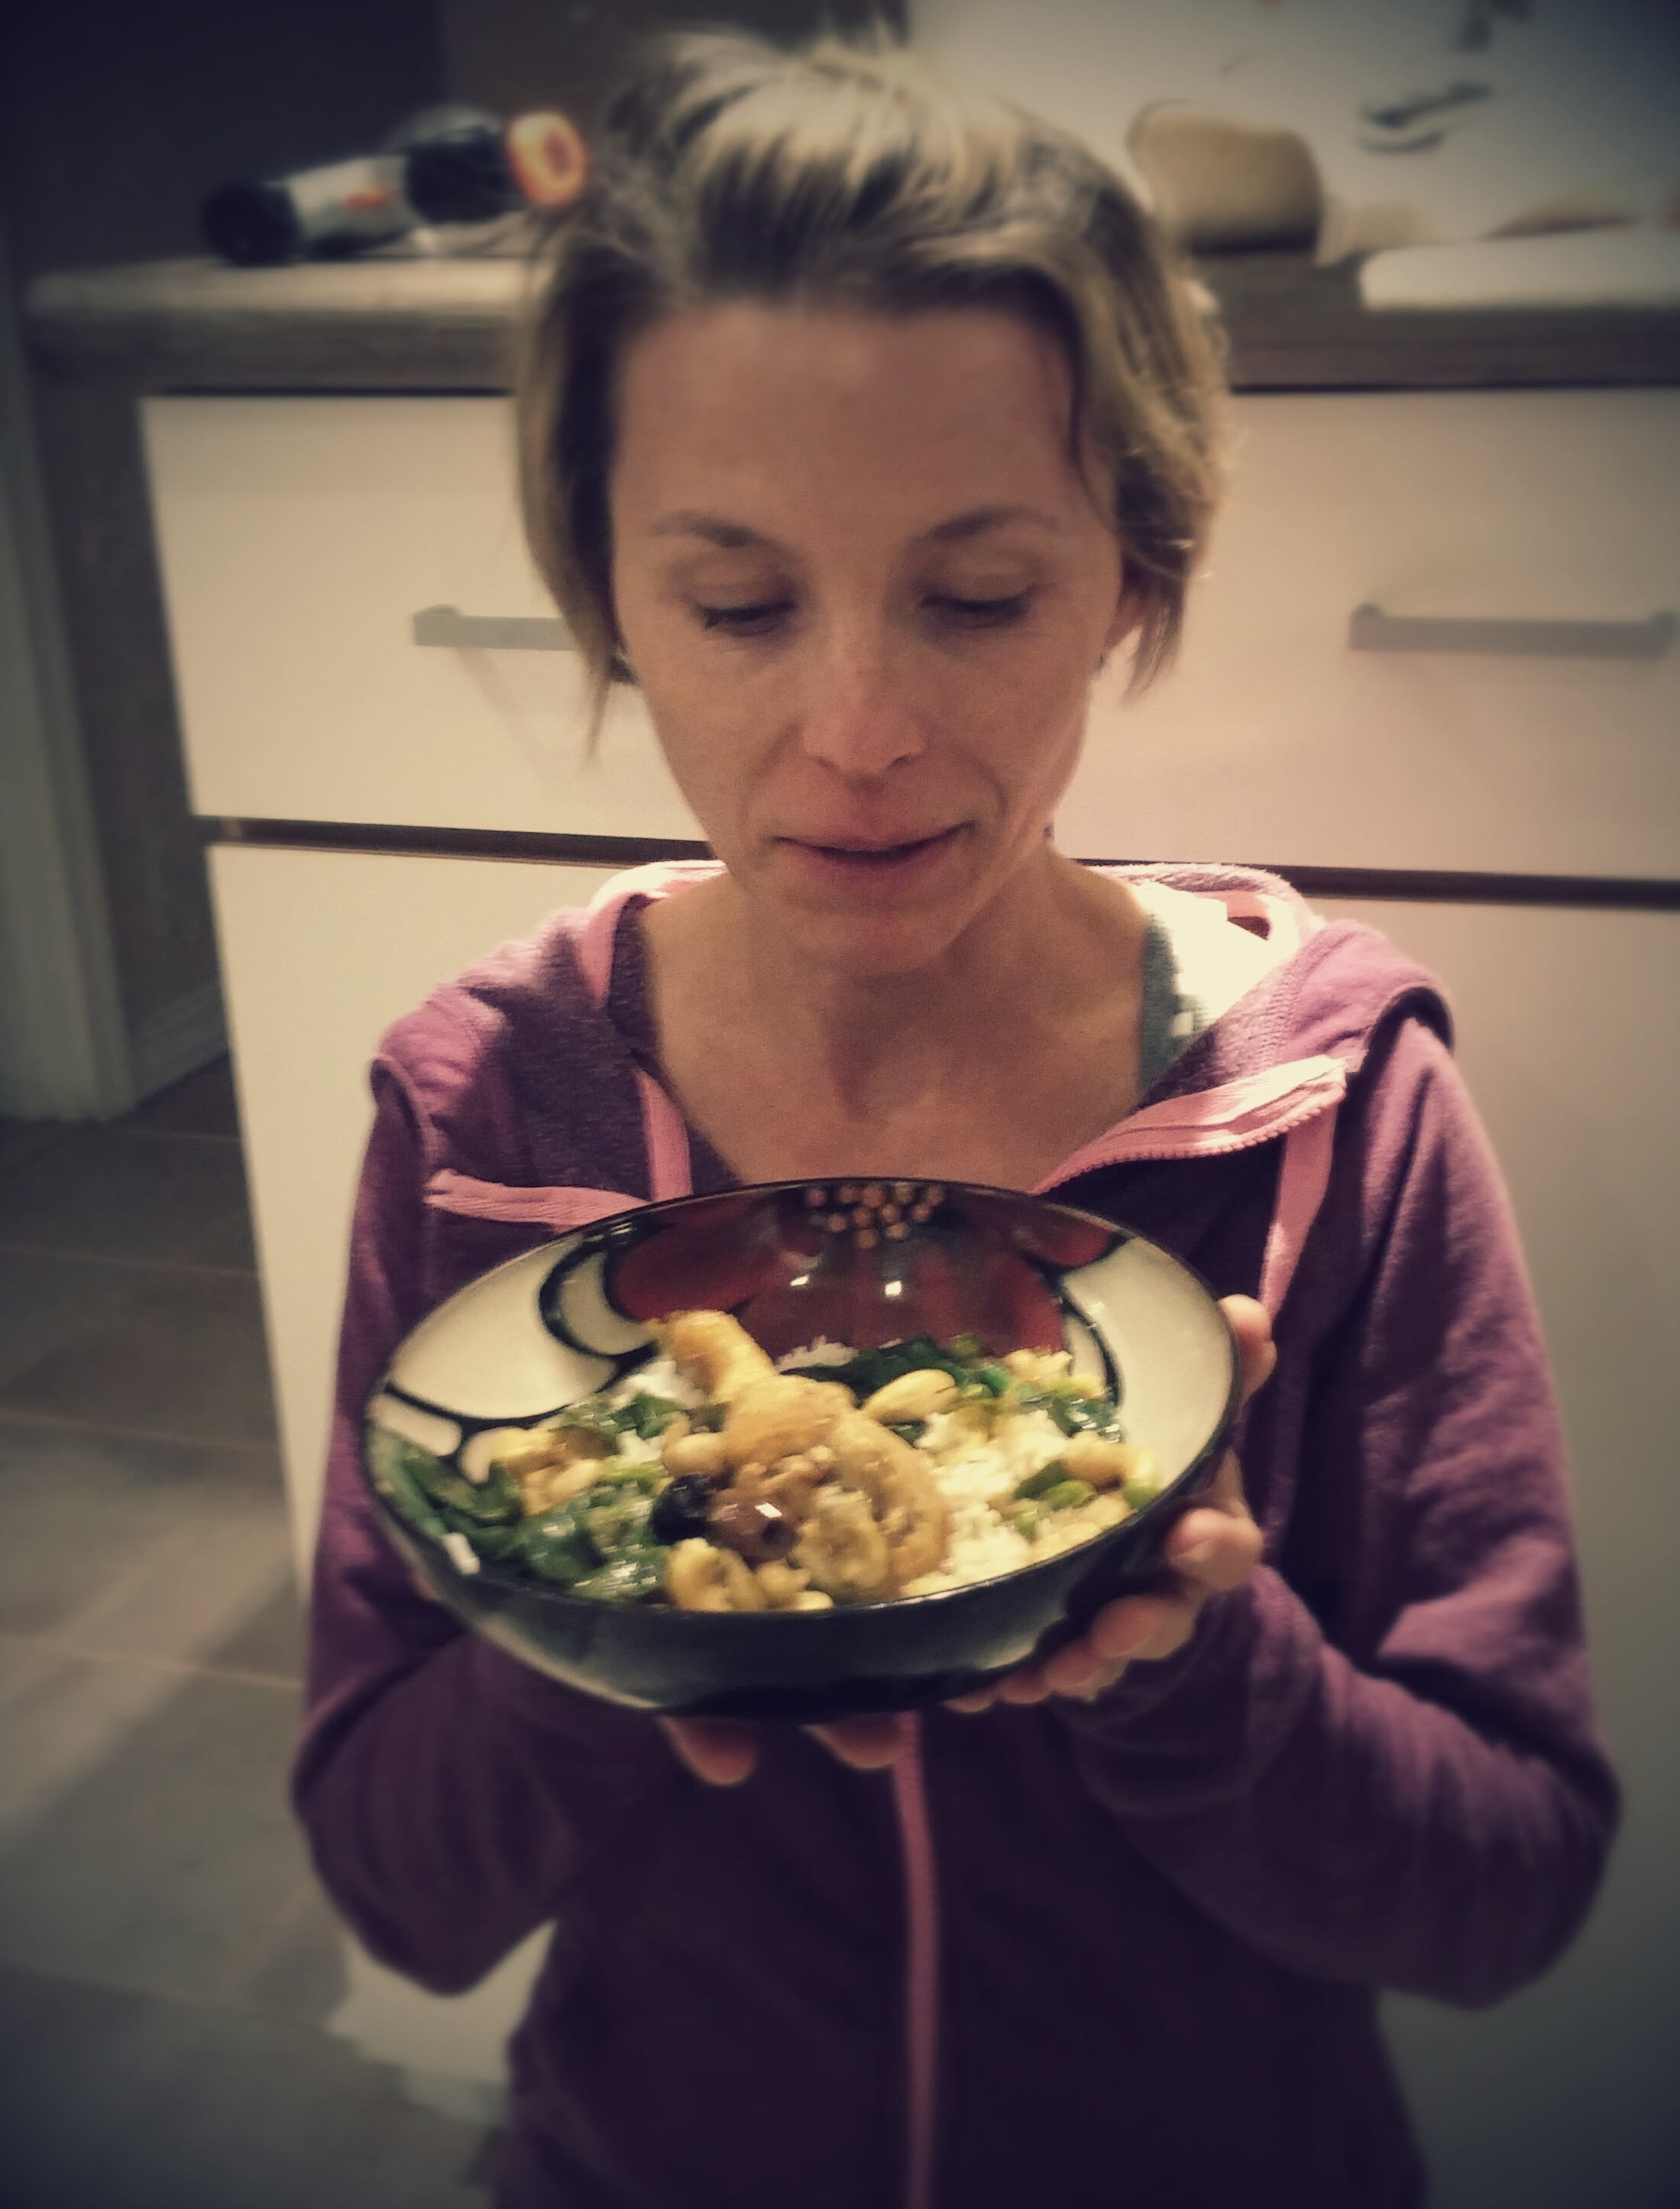 This was a recipe for Chicken Tajine from Mediterranean Paleo that turned out so delicious.